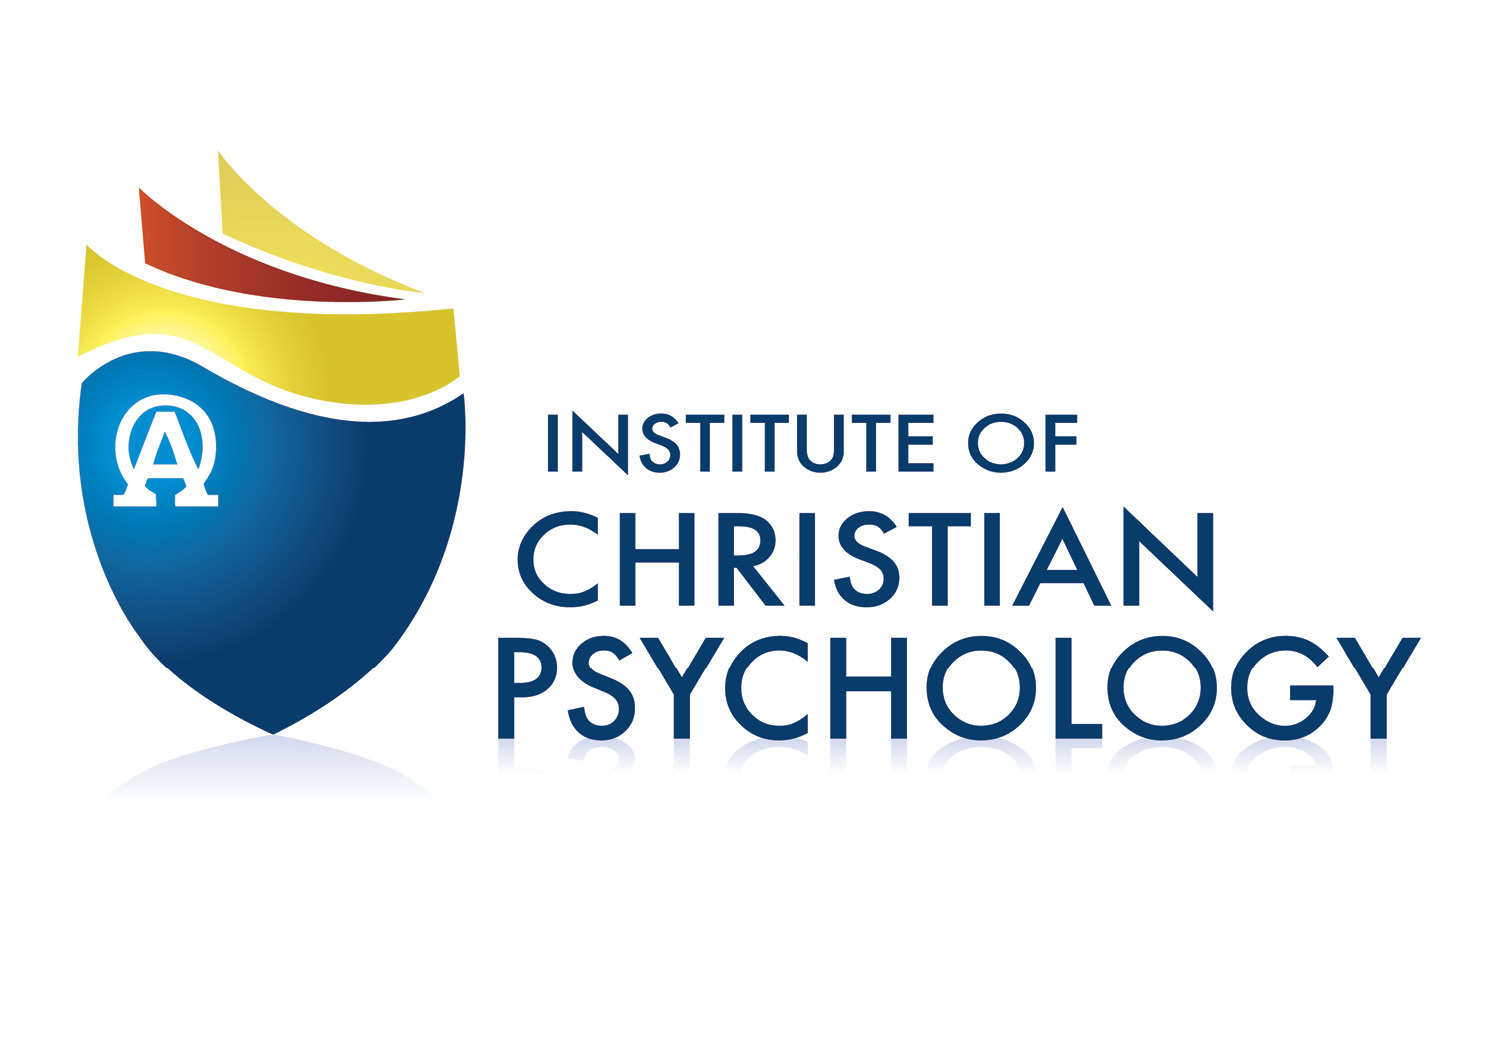 The Institute of Christian Psychology